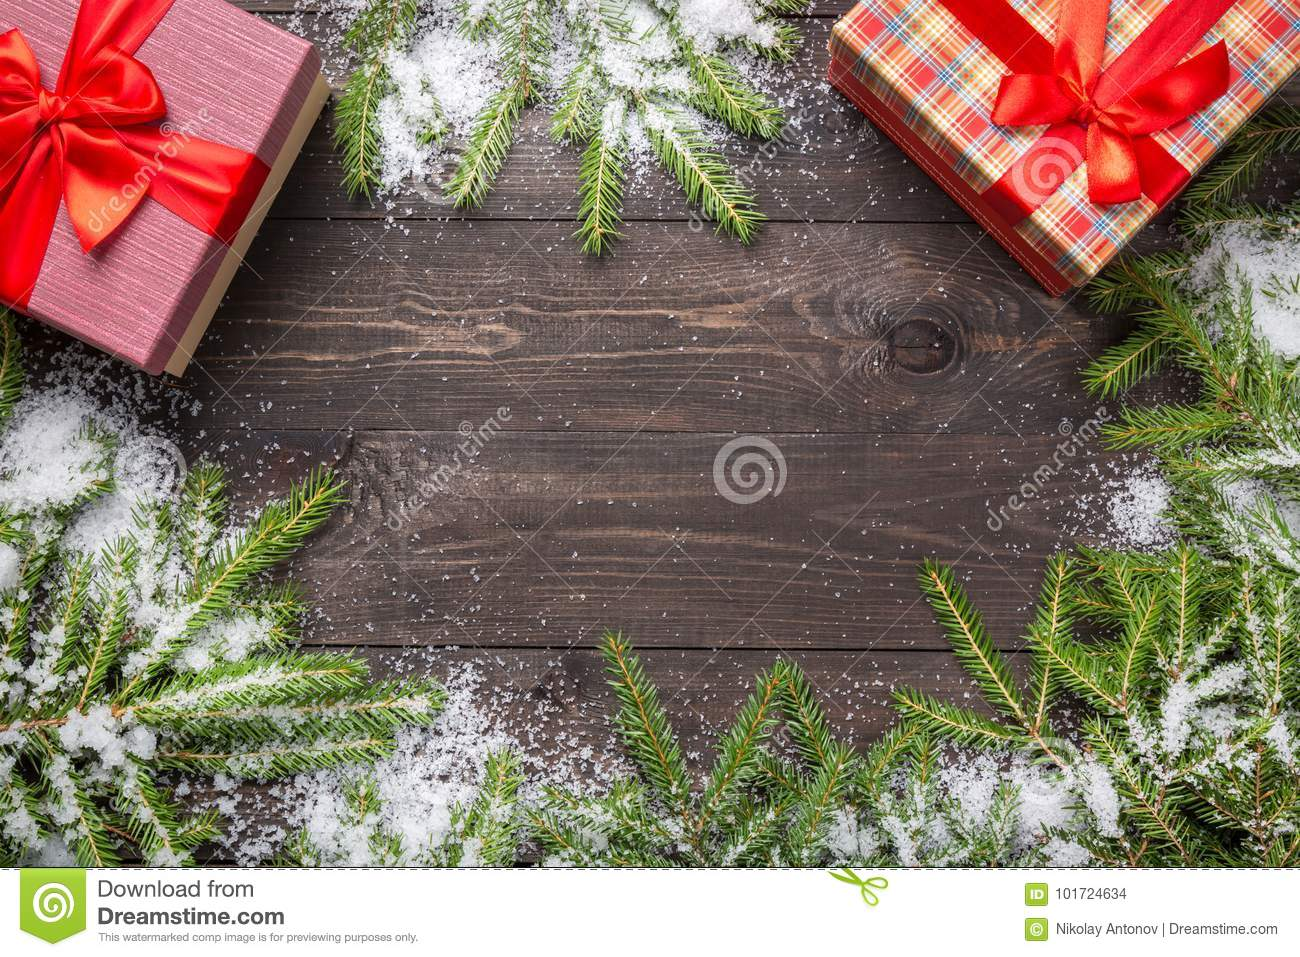 Christmas fir tree branches on a dark wooden board with snow and gift-boxes. Christmas or new year frame for your project with cop